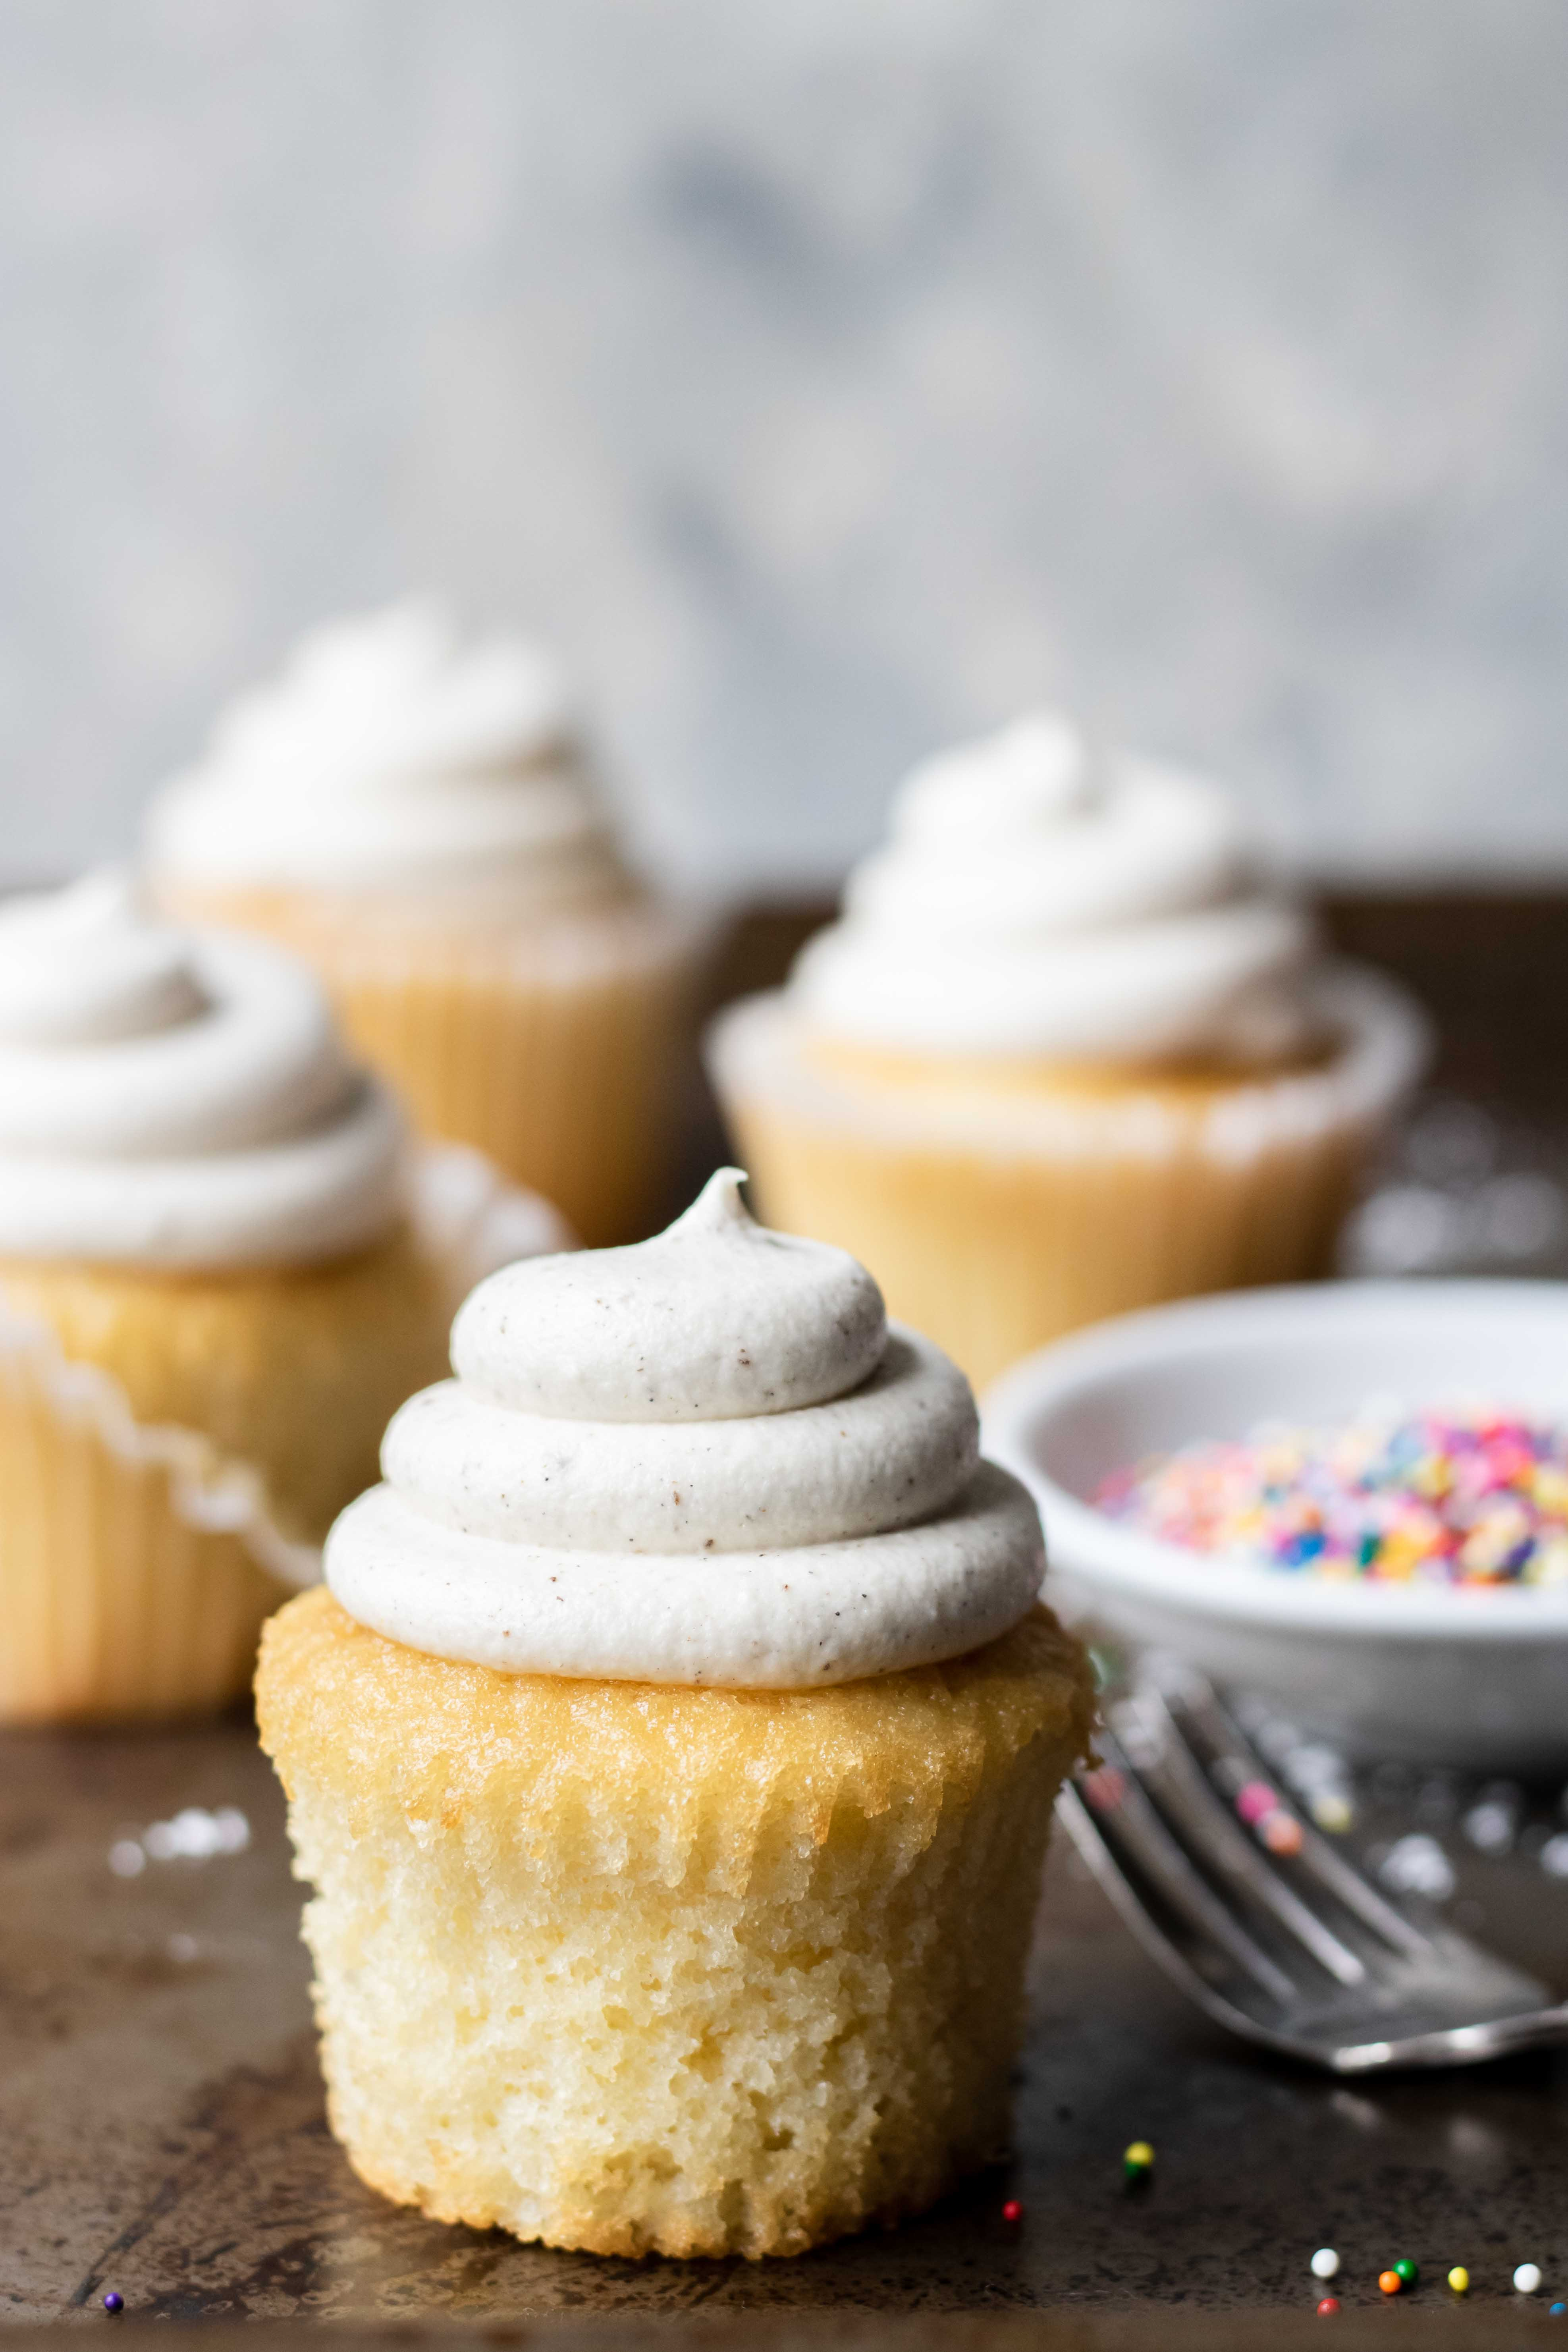 Vanilla Cupcakes with Vanilla Frosting and sprinkles on the side - food photography